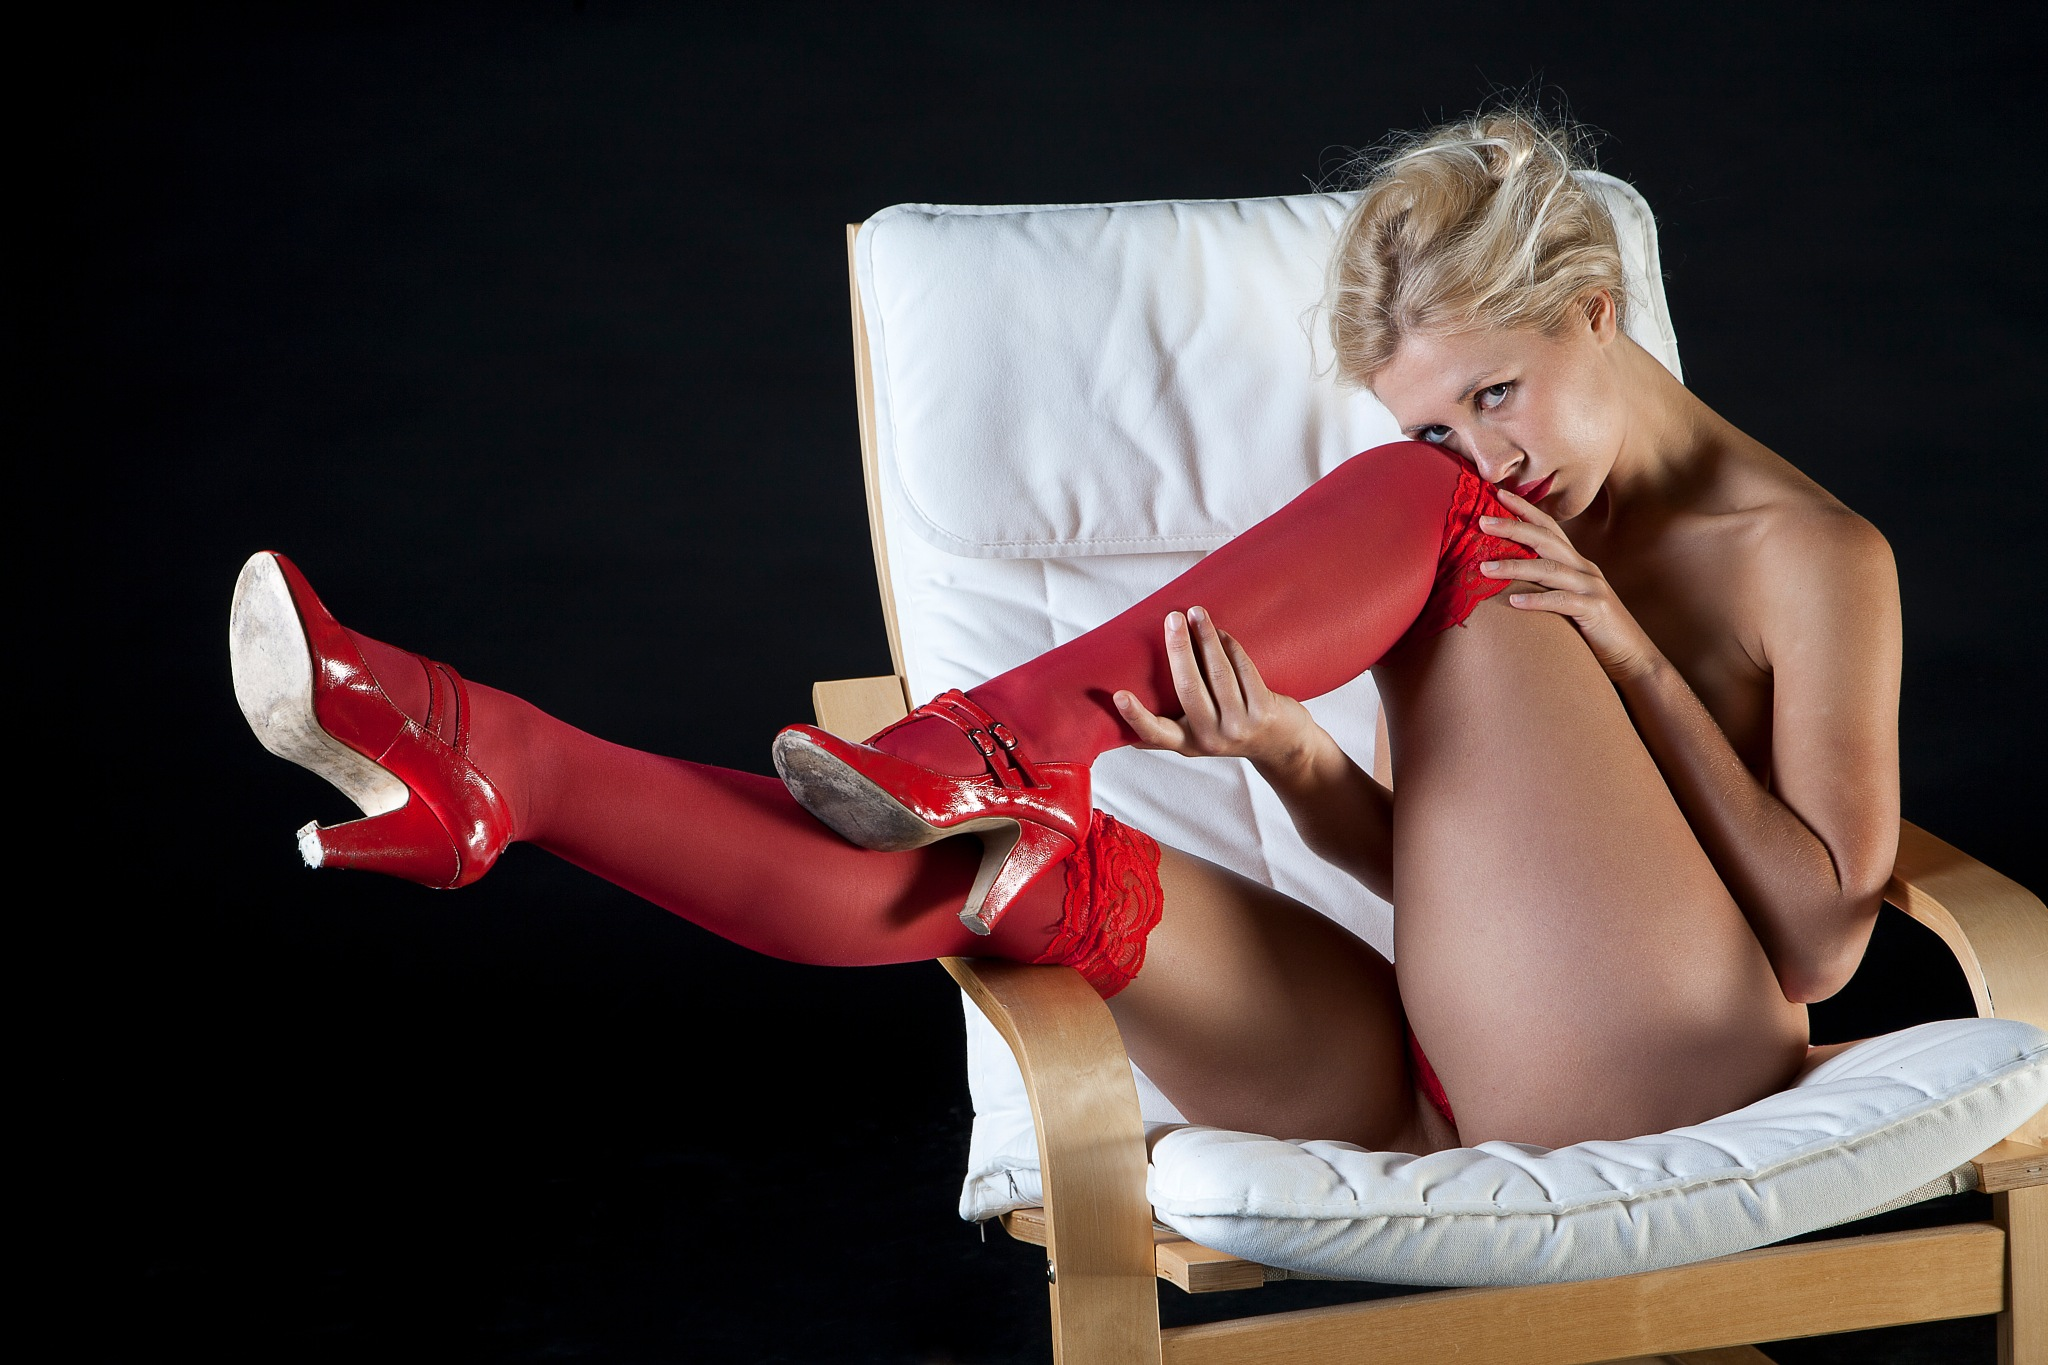 Do you like me in red? by NickJamesPhotography